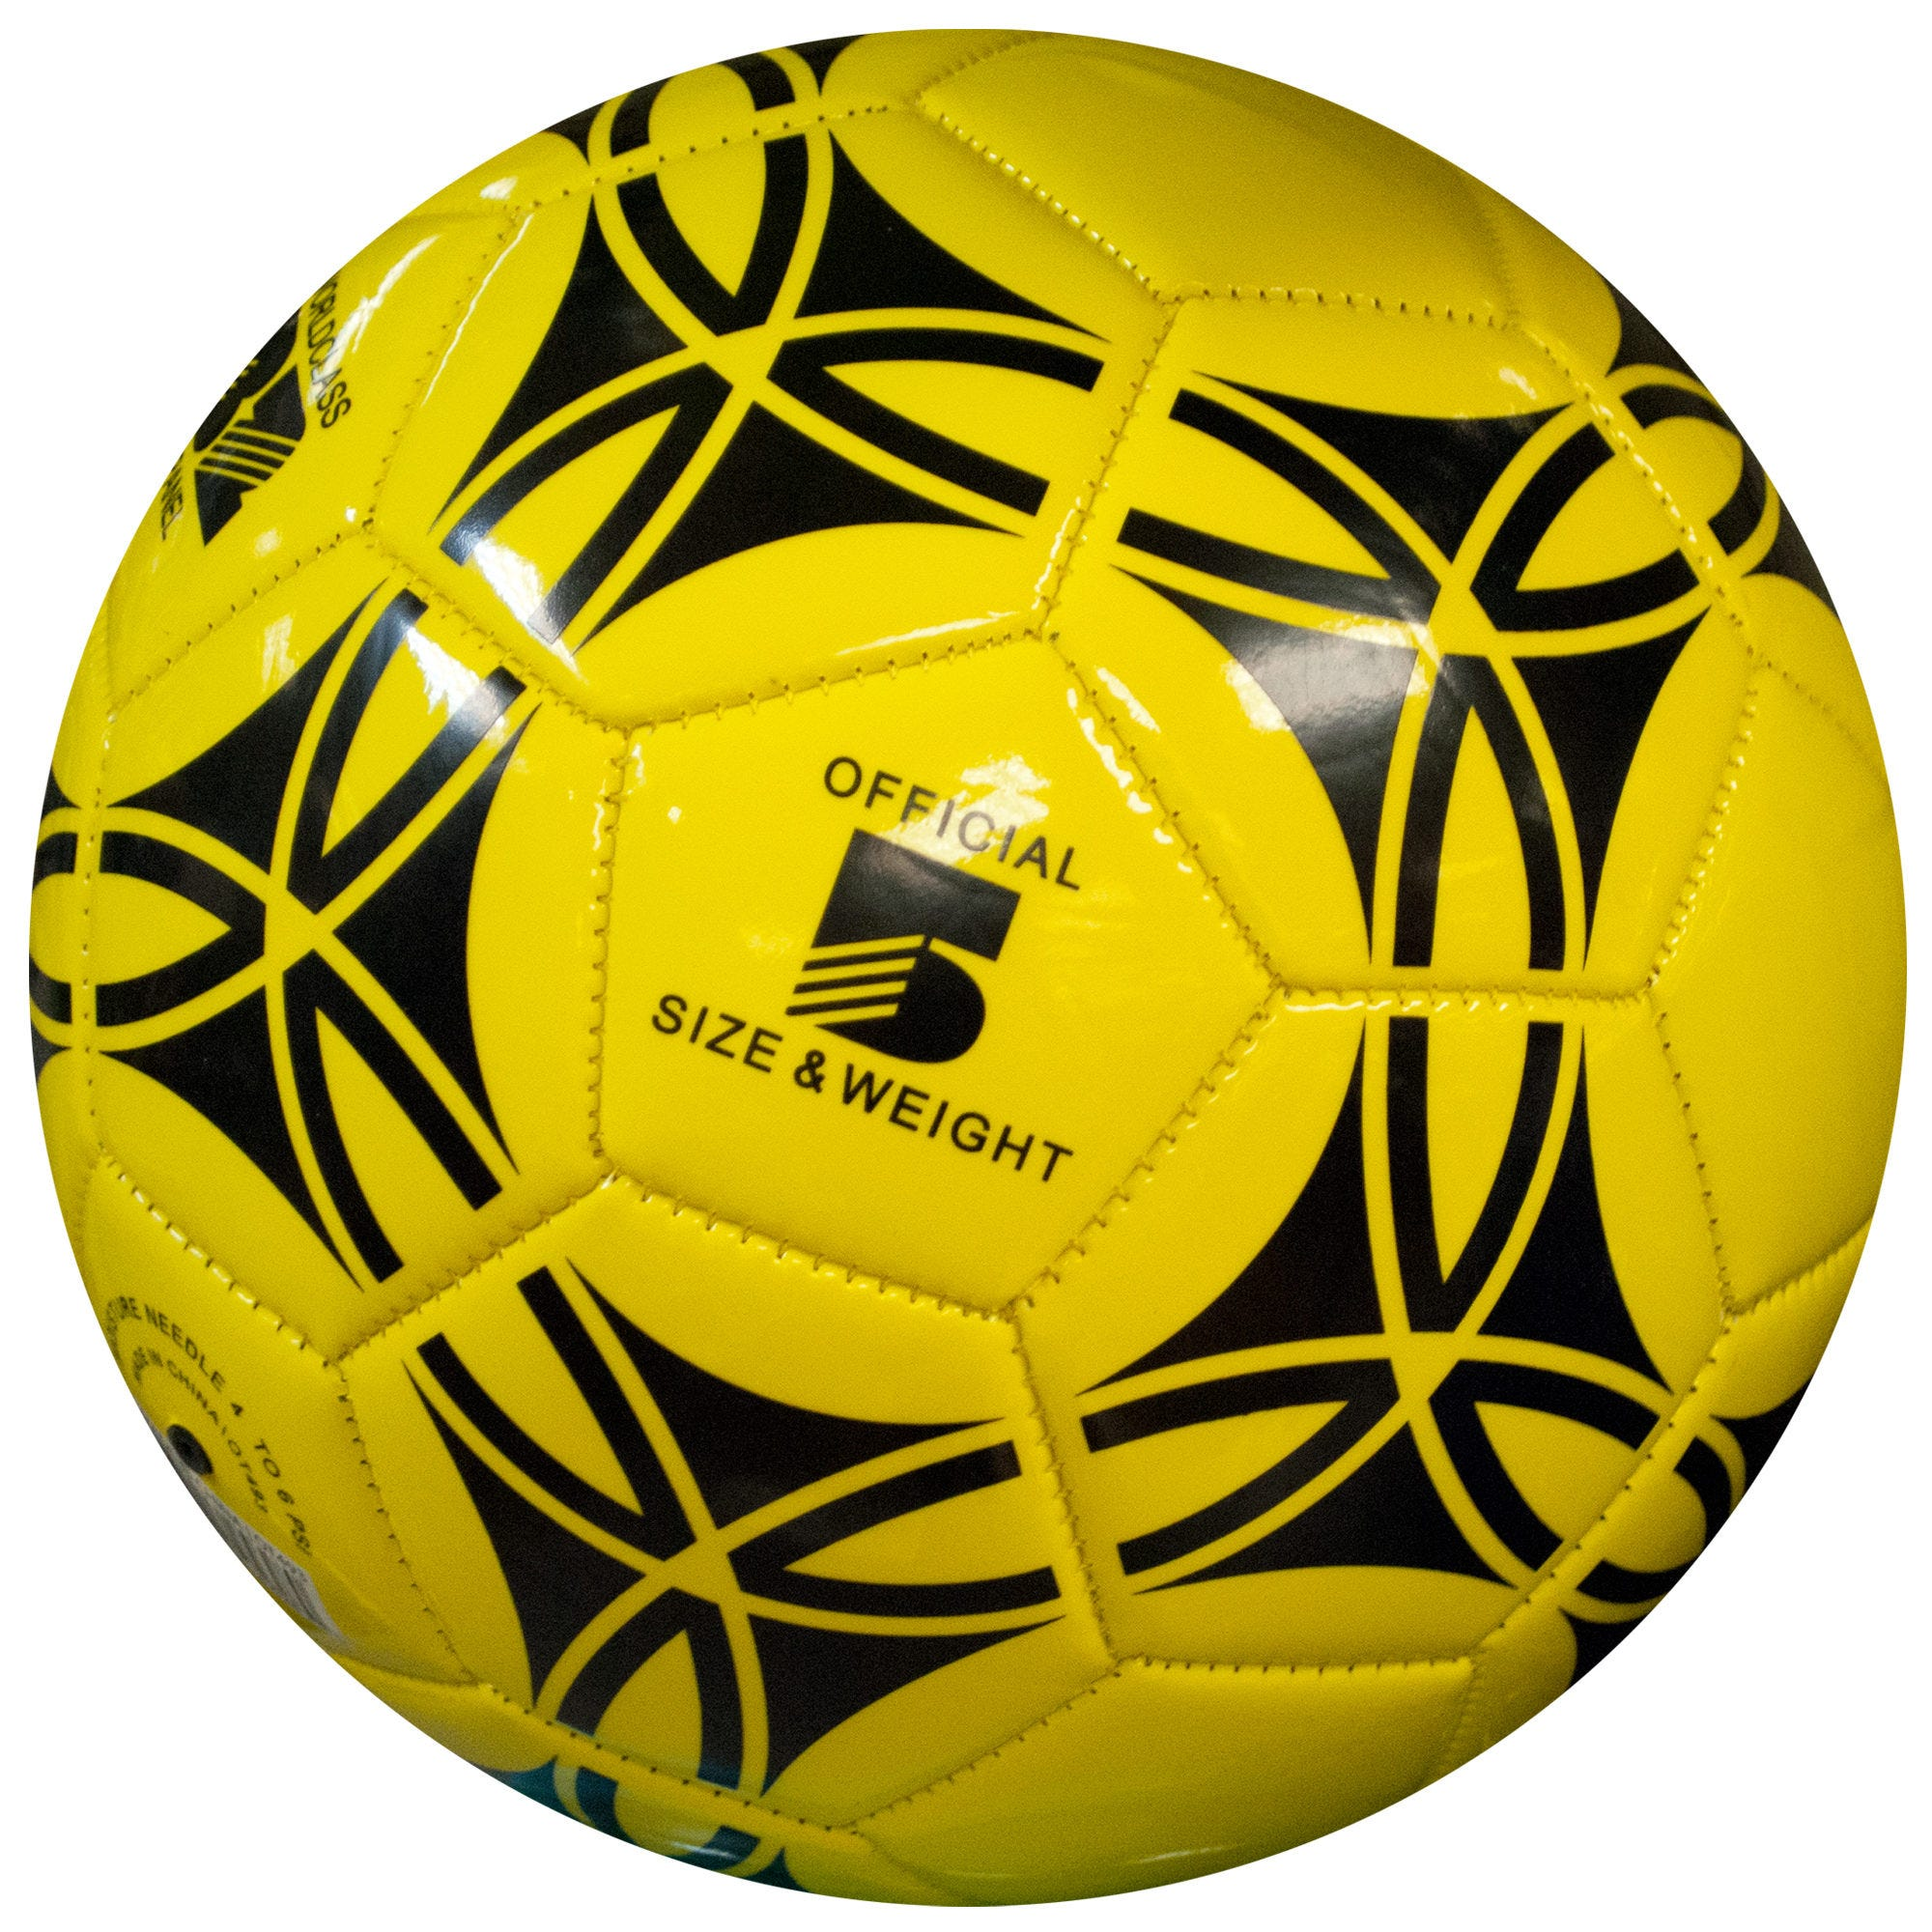 Size 5 Glossy Patterned Soccer Ball- Qty 4